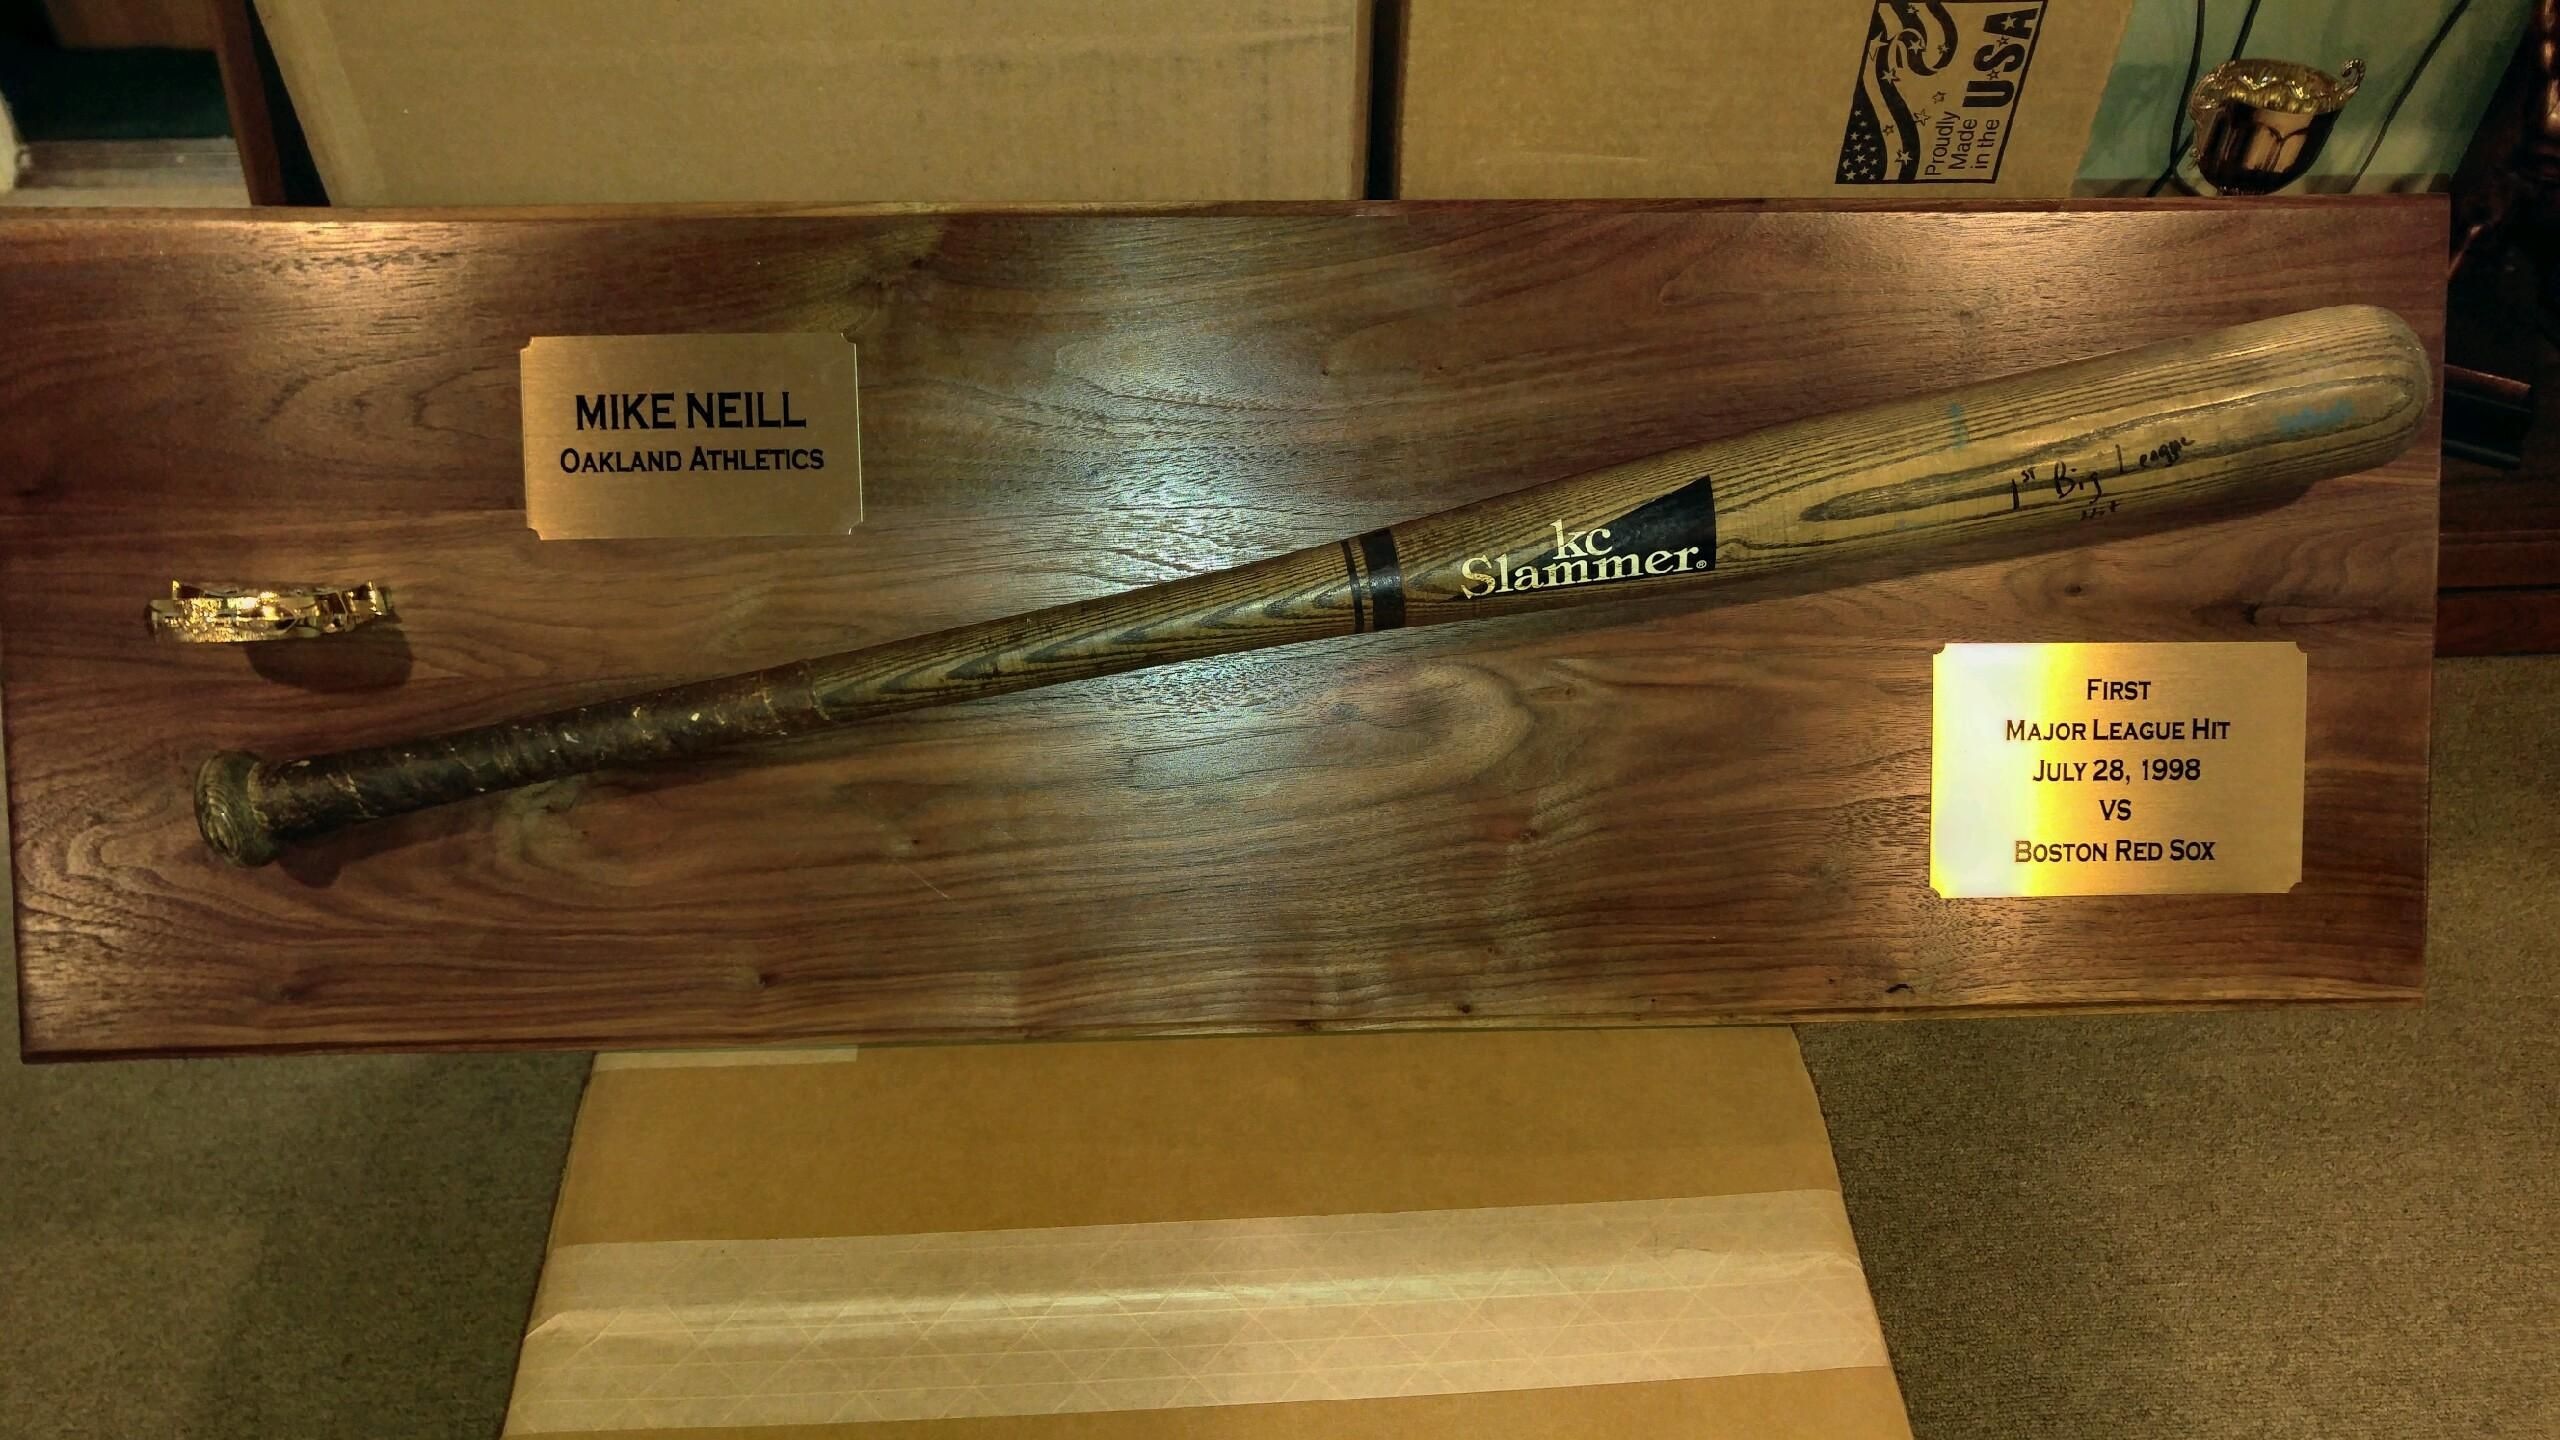 Major League Baseball Bat Display For Mike Neill Made Of Walnut And Finished In Satin Lacquer